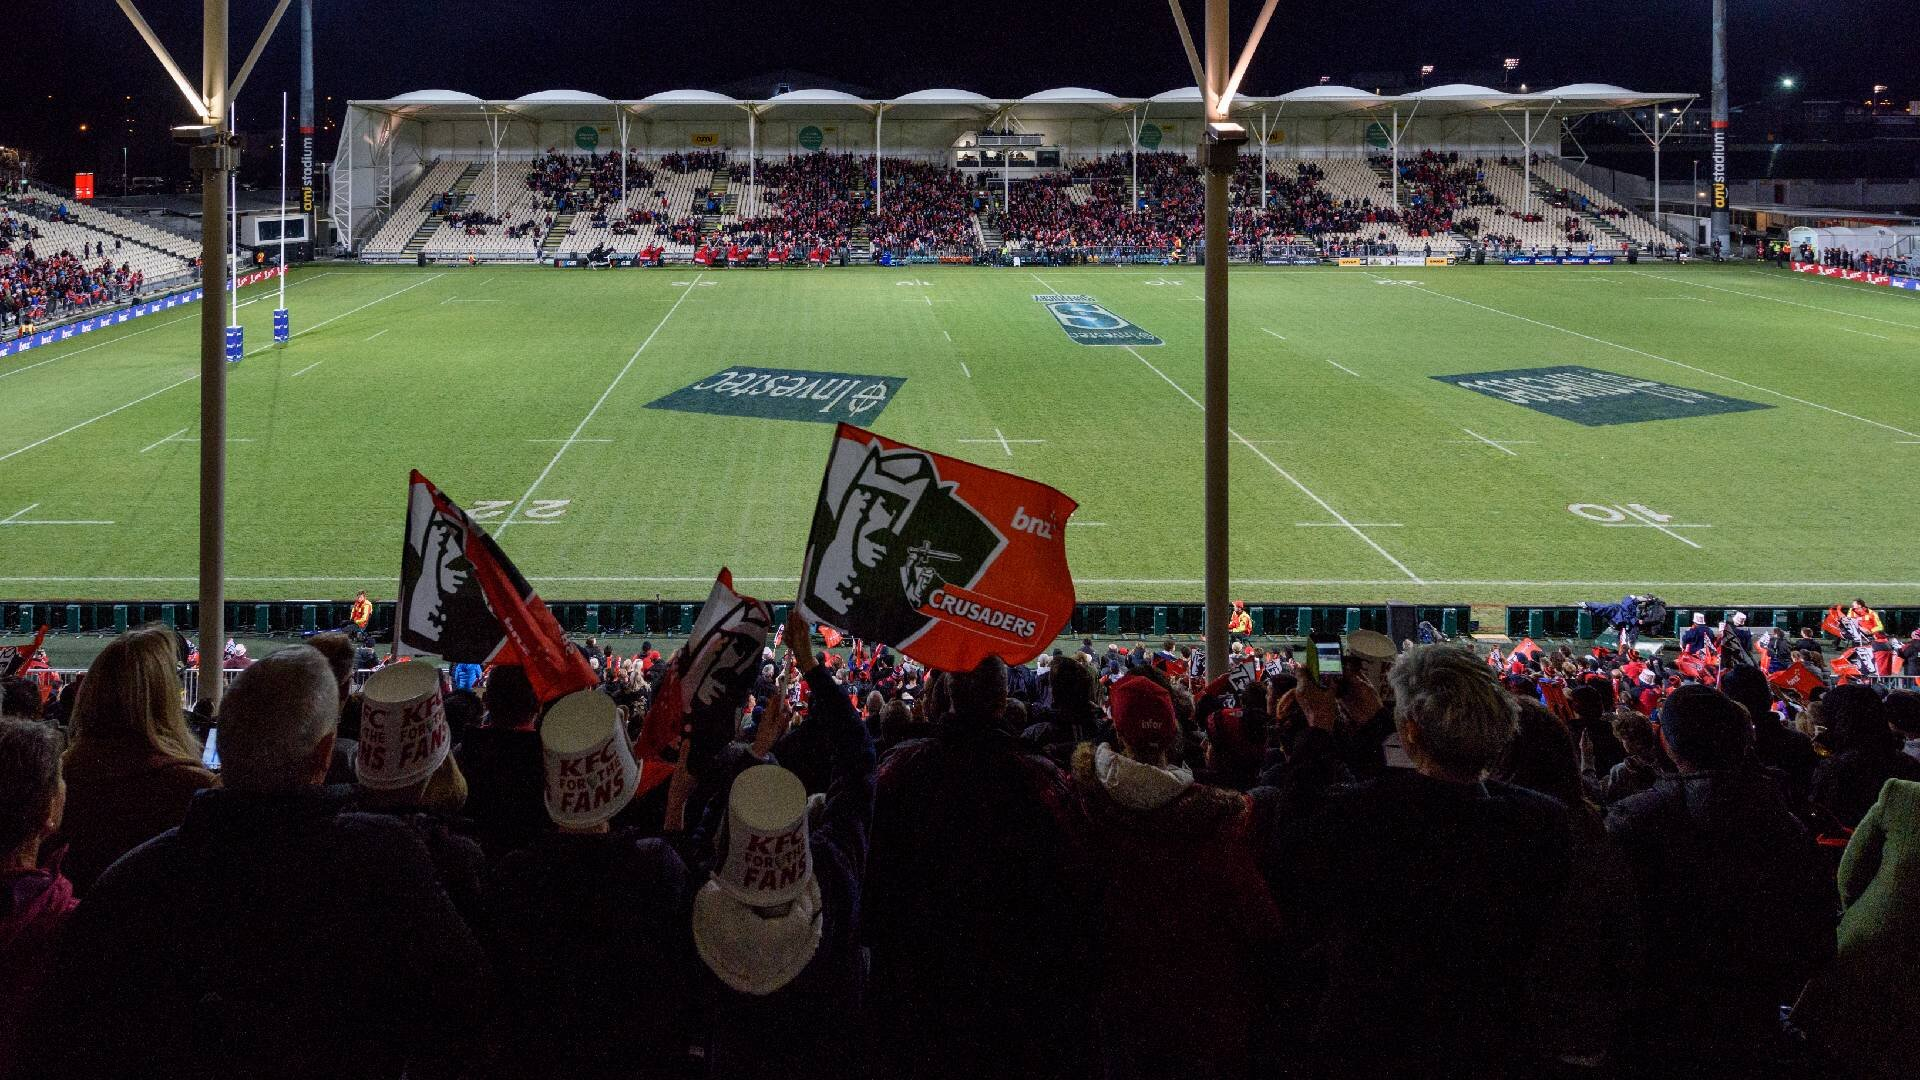 Crusaders preparing to welcome back fans for their first Super Rugby Aotearoa match in Christchurch